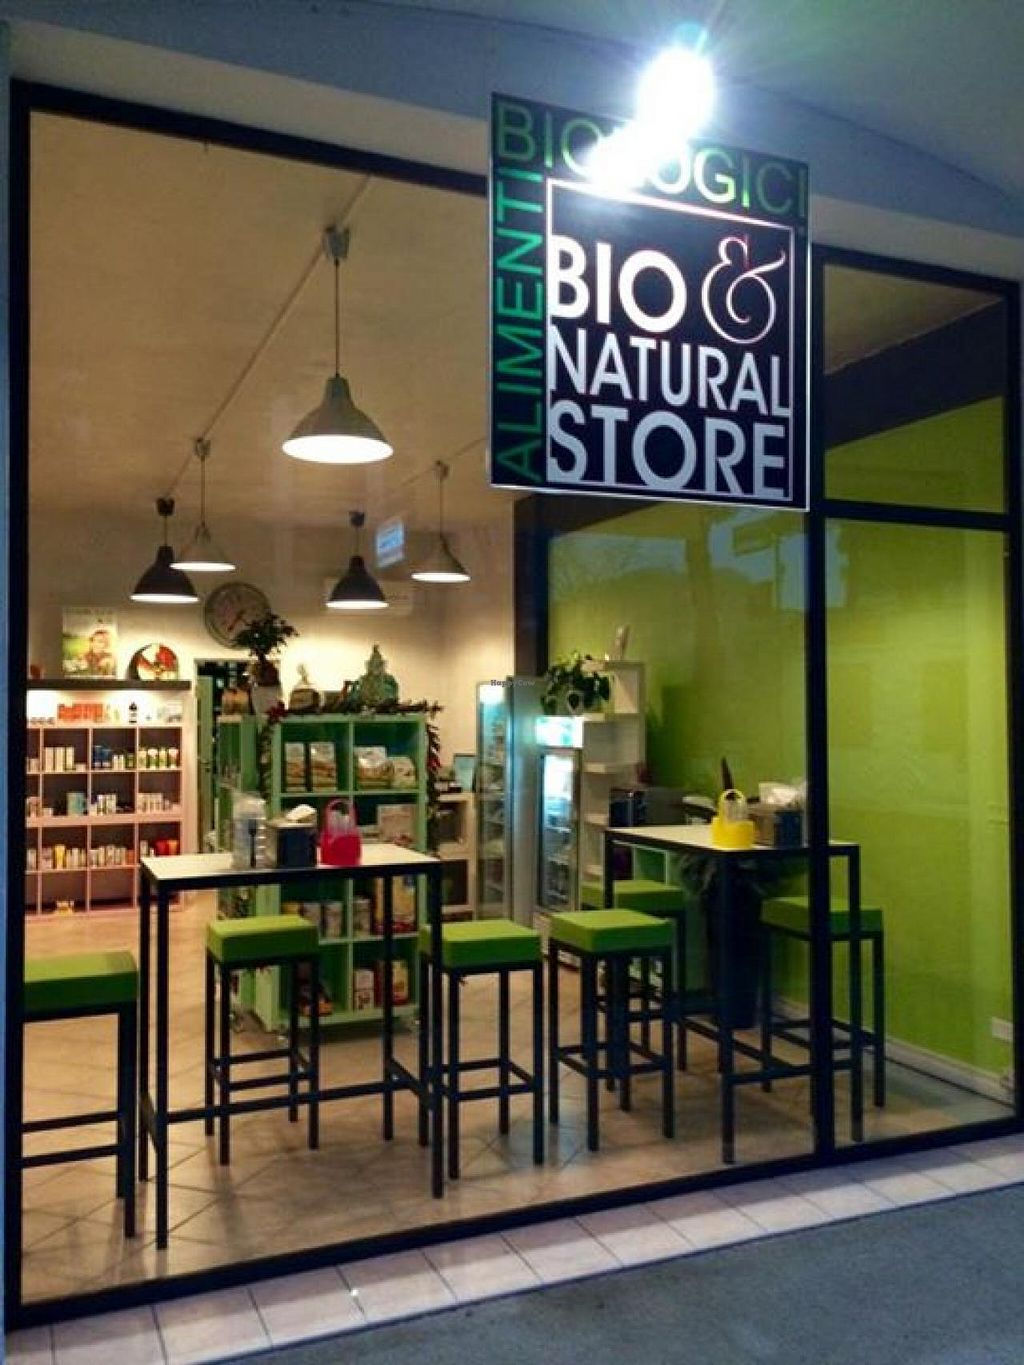 "Photo of Bio and Natural Store  by <a href=""/members/profile/veg-geko"">veg-geko</a> <br/>Bio and Natural Store <br/> July 16, 2015  - <a href='/contact/abuse/image/60669/109585'>Report</a>"